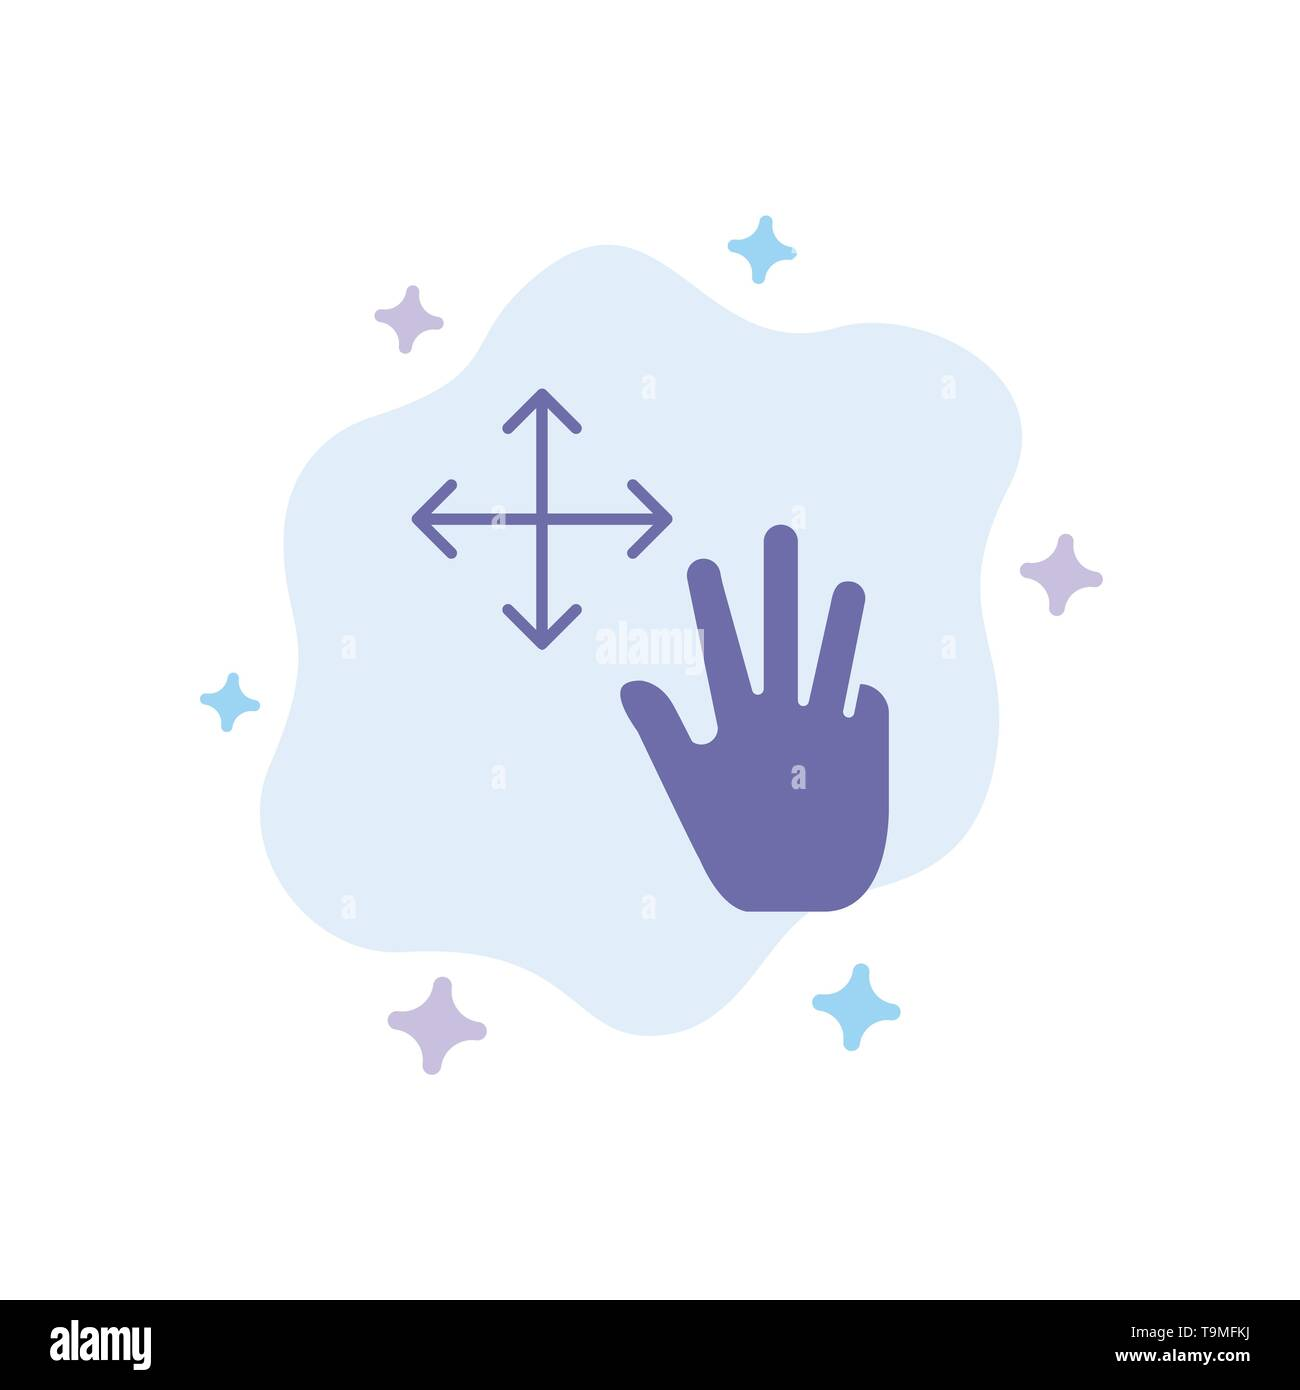 Three, Finger, Gestures, Hold Blue Icon on Abstract Cloud Background - Stock Image